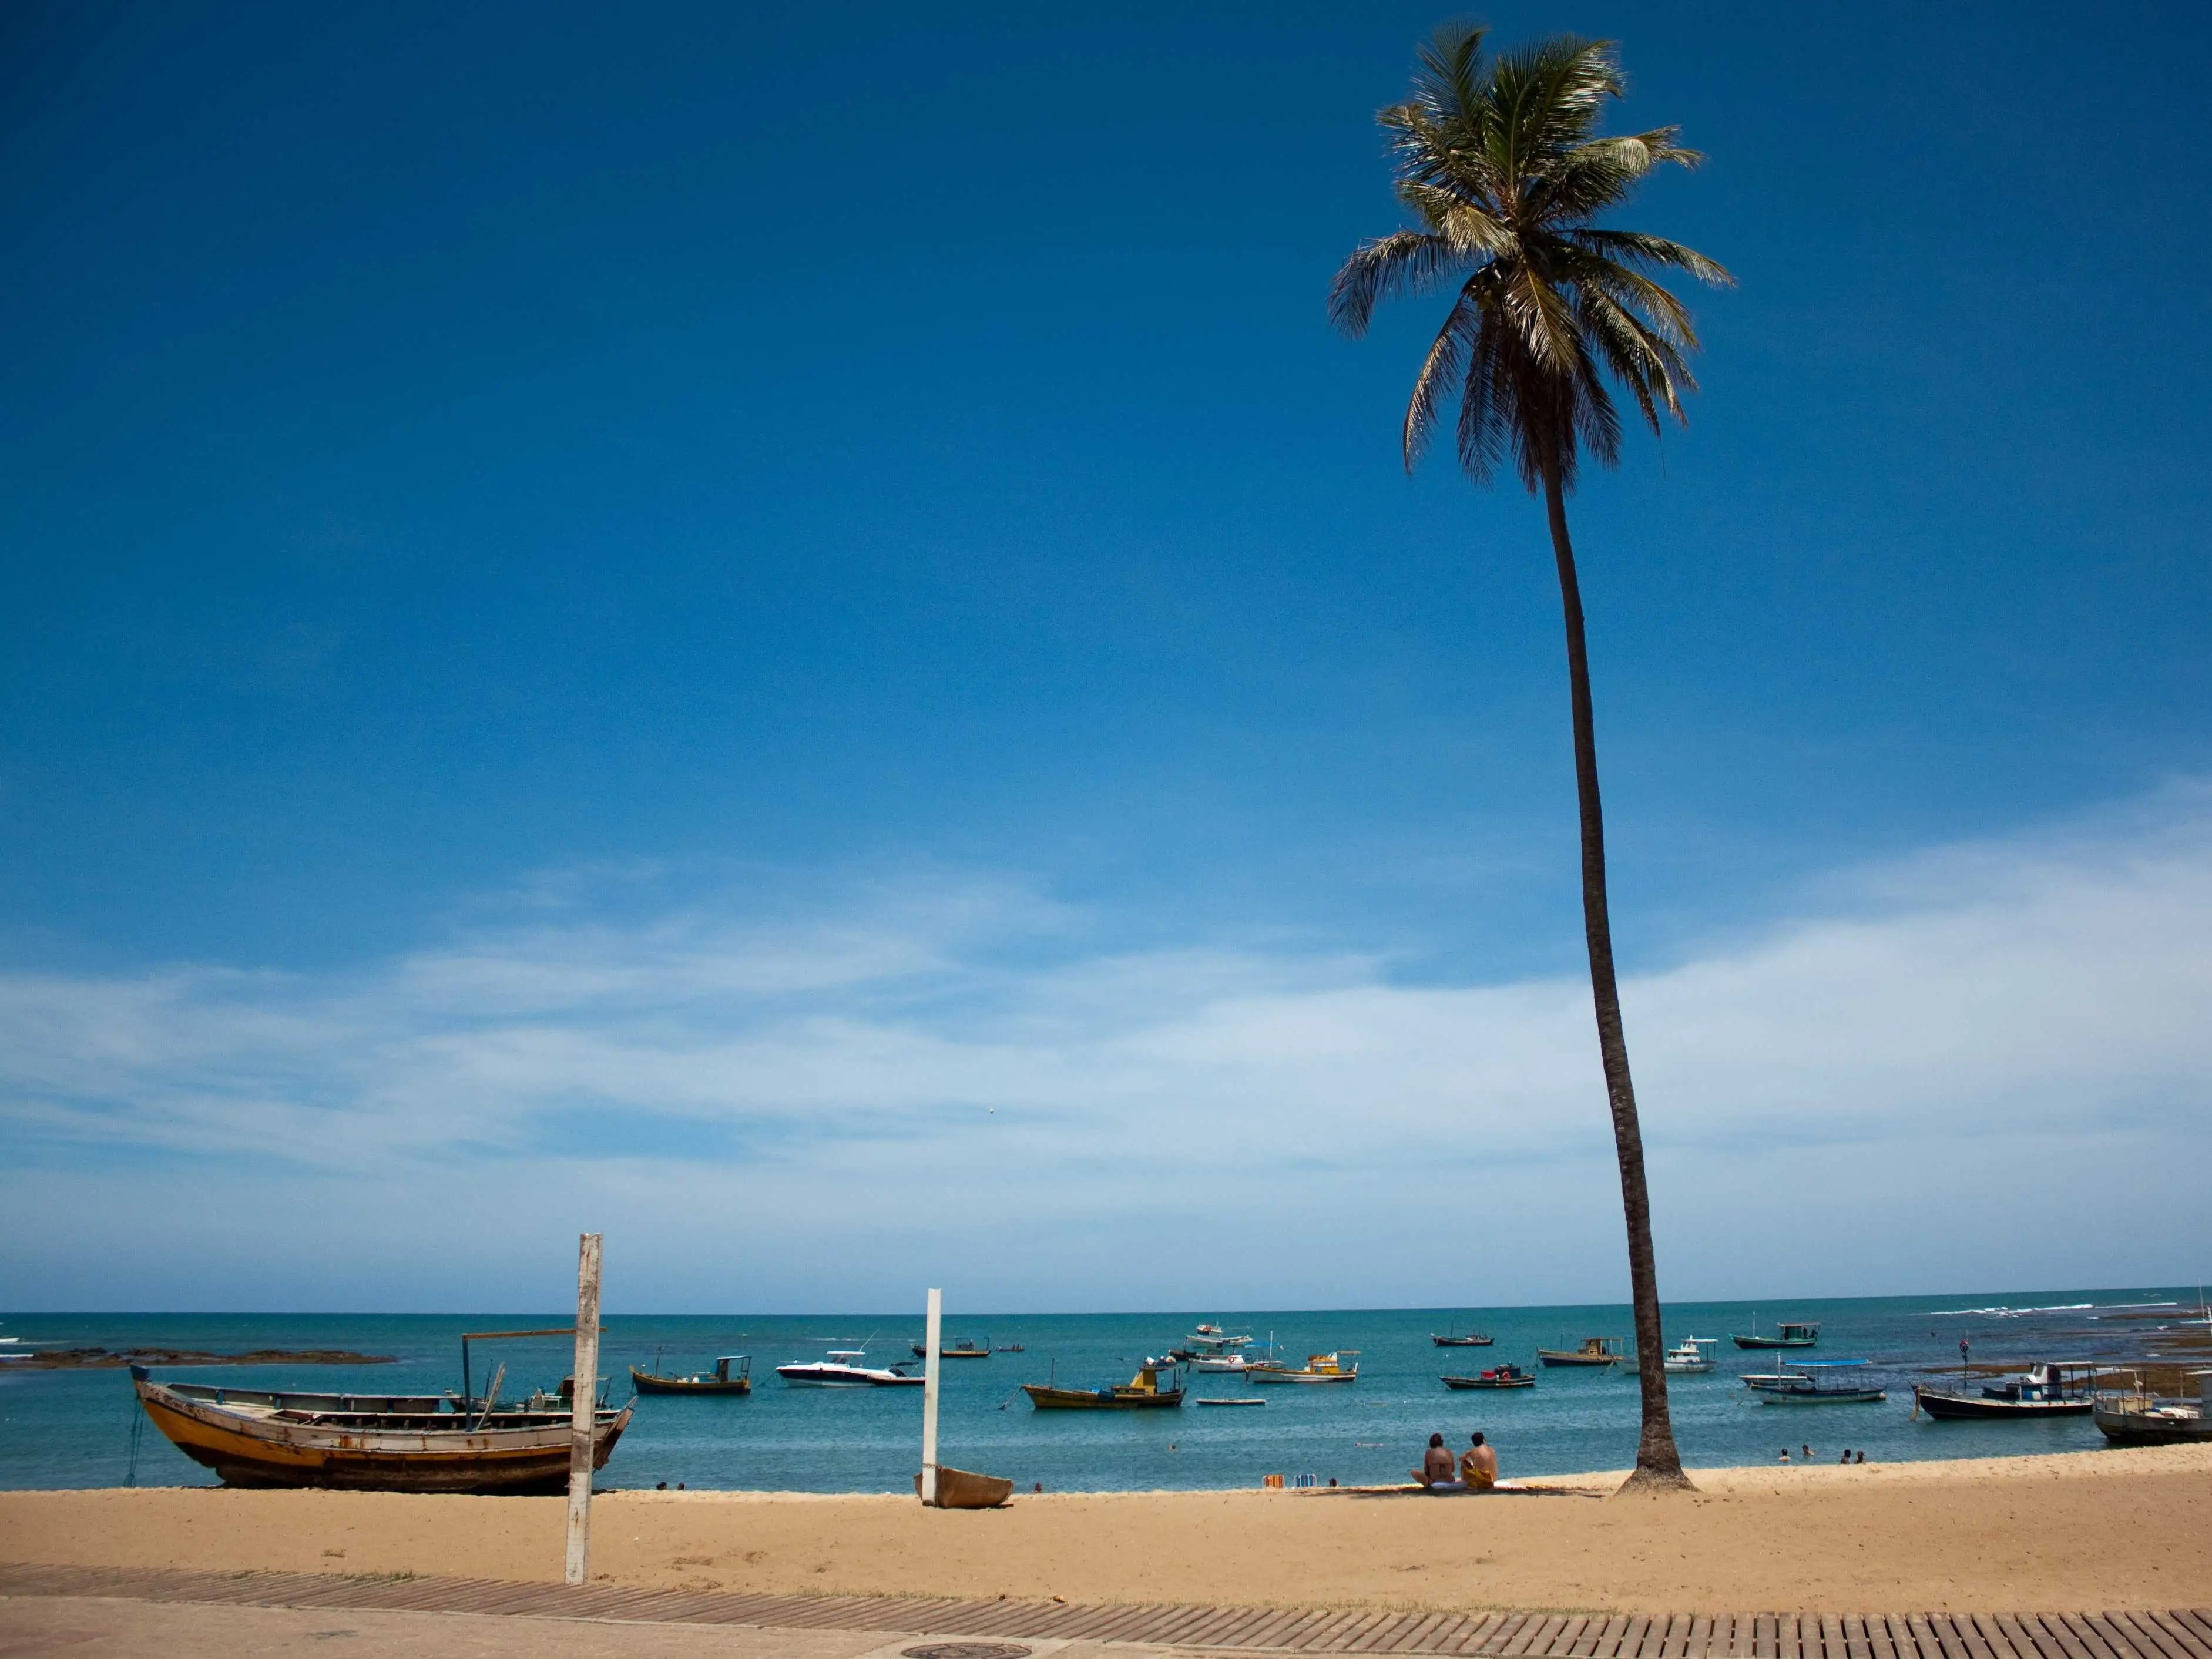 An old fishing village-turned-resort-style beach, the beautiful Praia do Forte in Bahia, Brazil, features colorful boats and small, lazy waves.